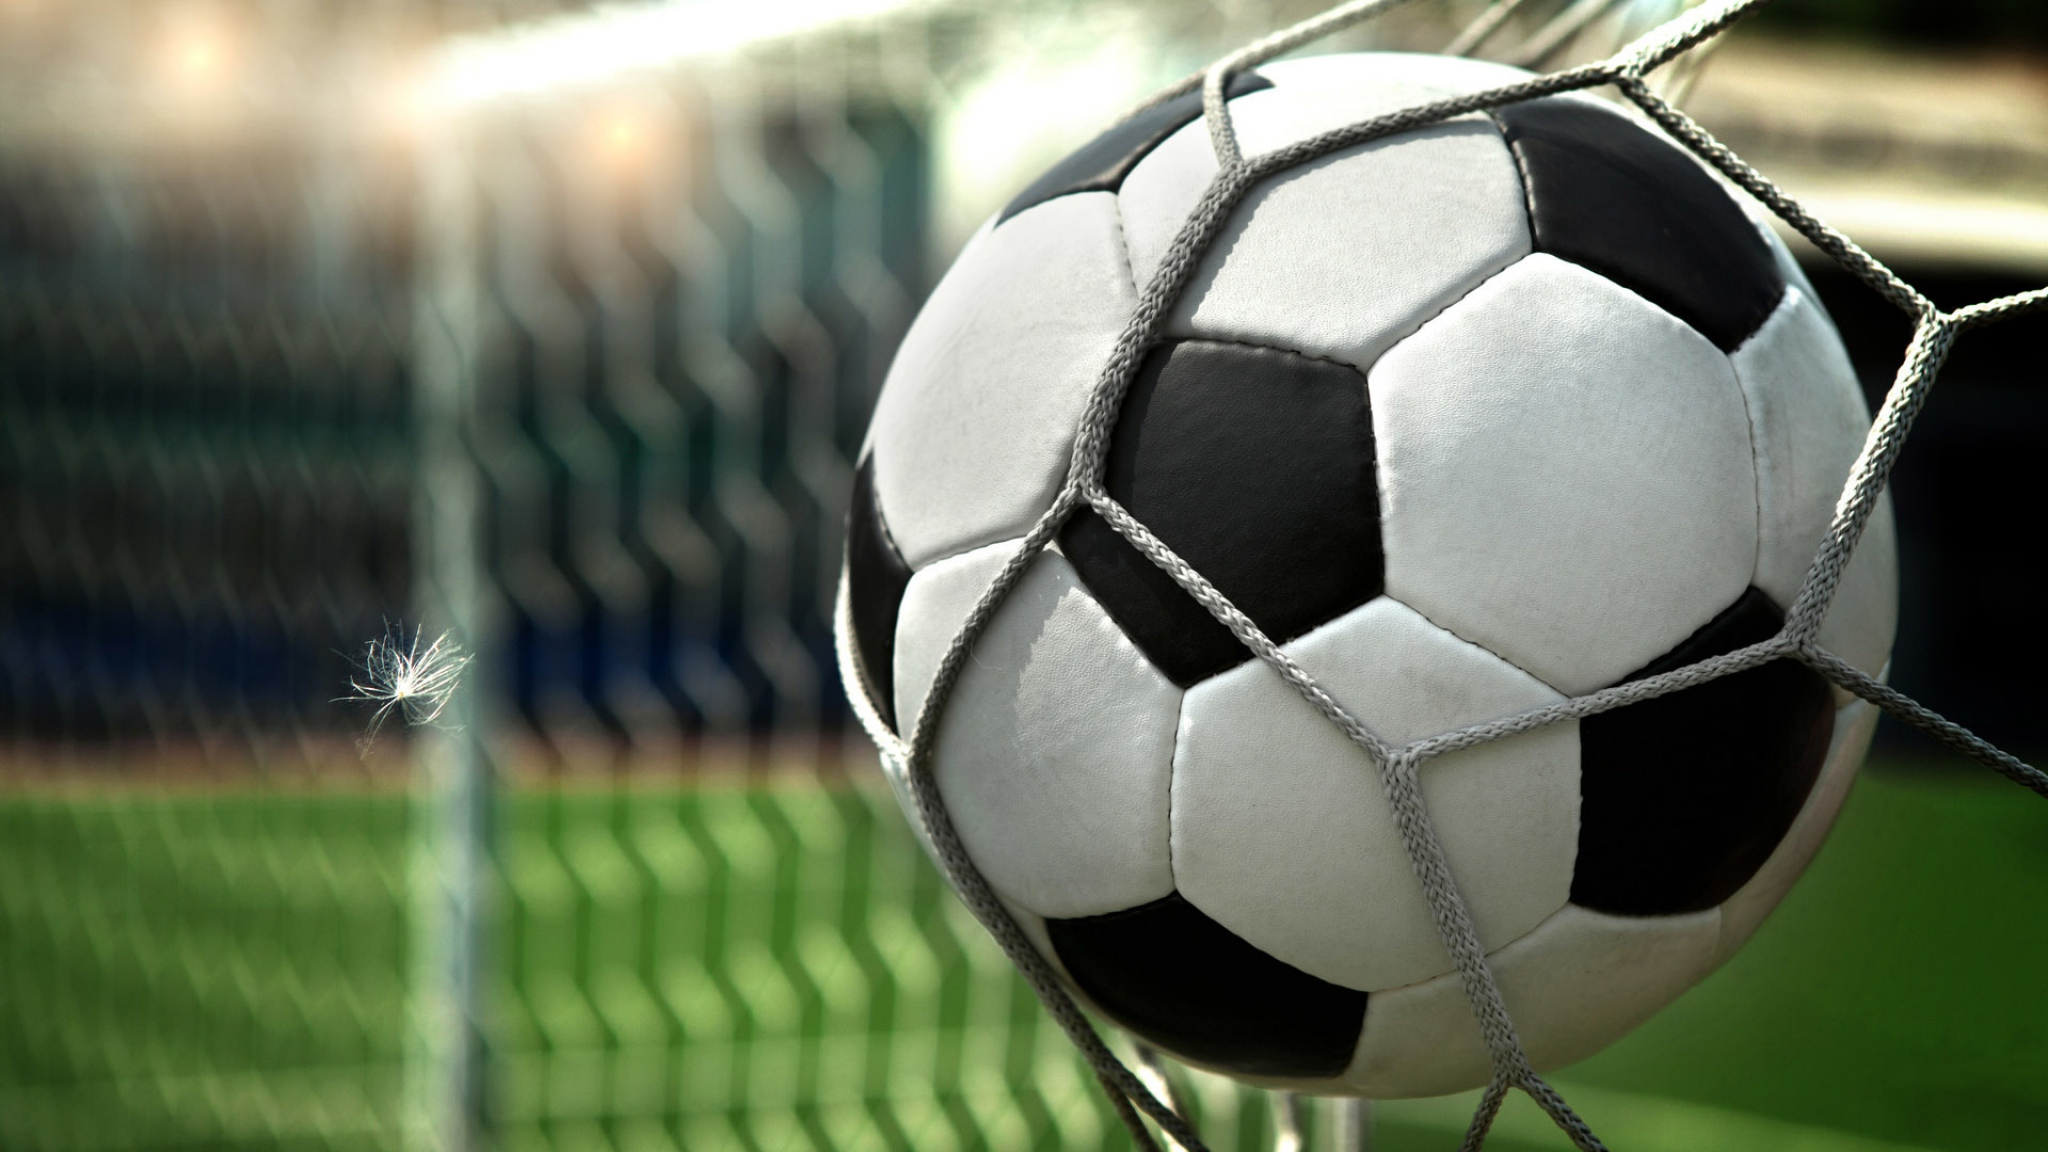 soccer hd wallpaper background image 2048x1152 id 657869